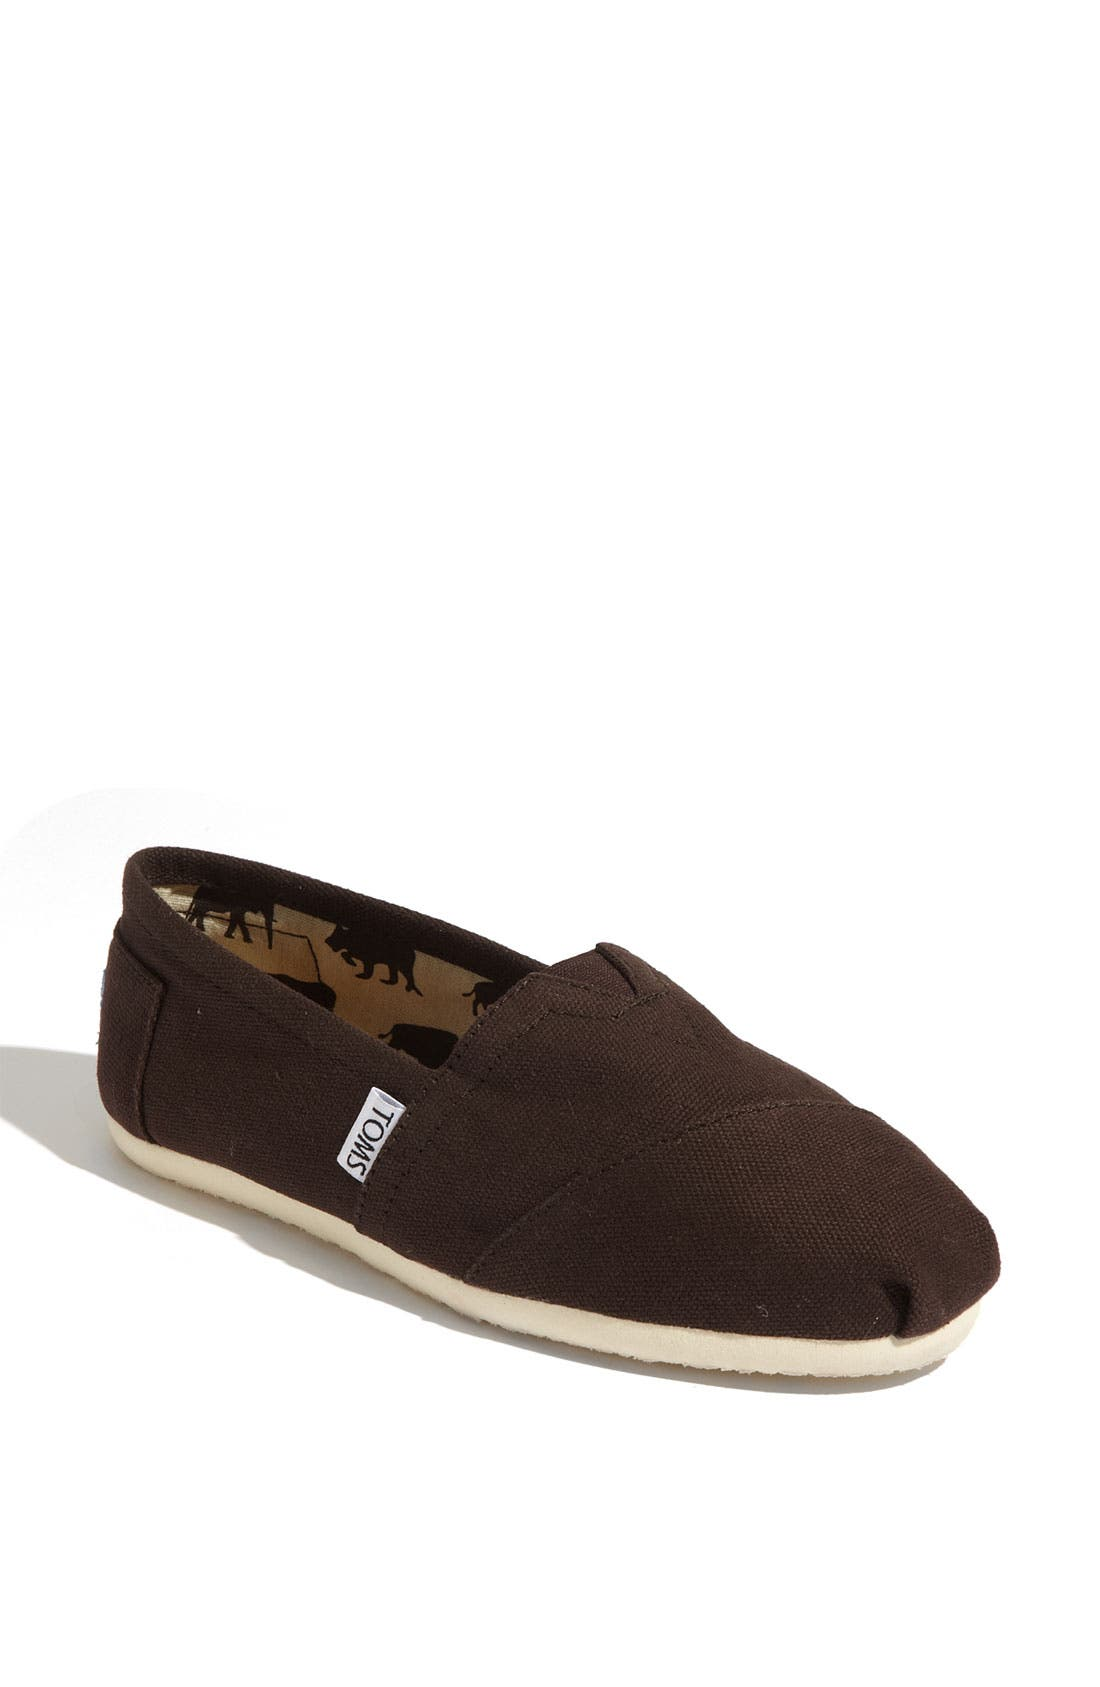 Alternate Image 1 Selected - TOMS 'Classic' Canvas Slip-On (Women)